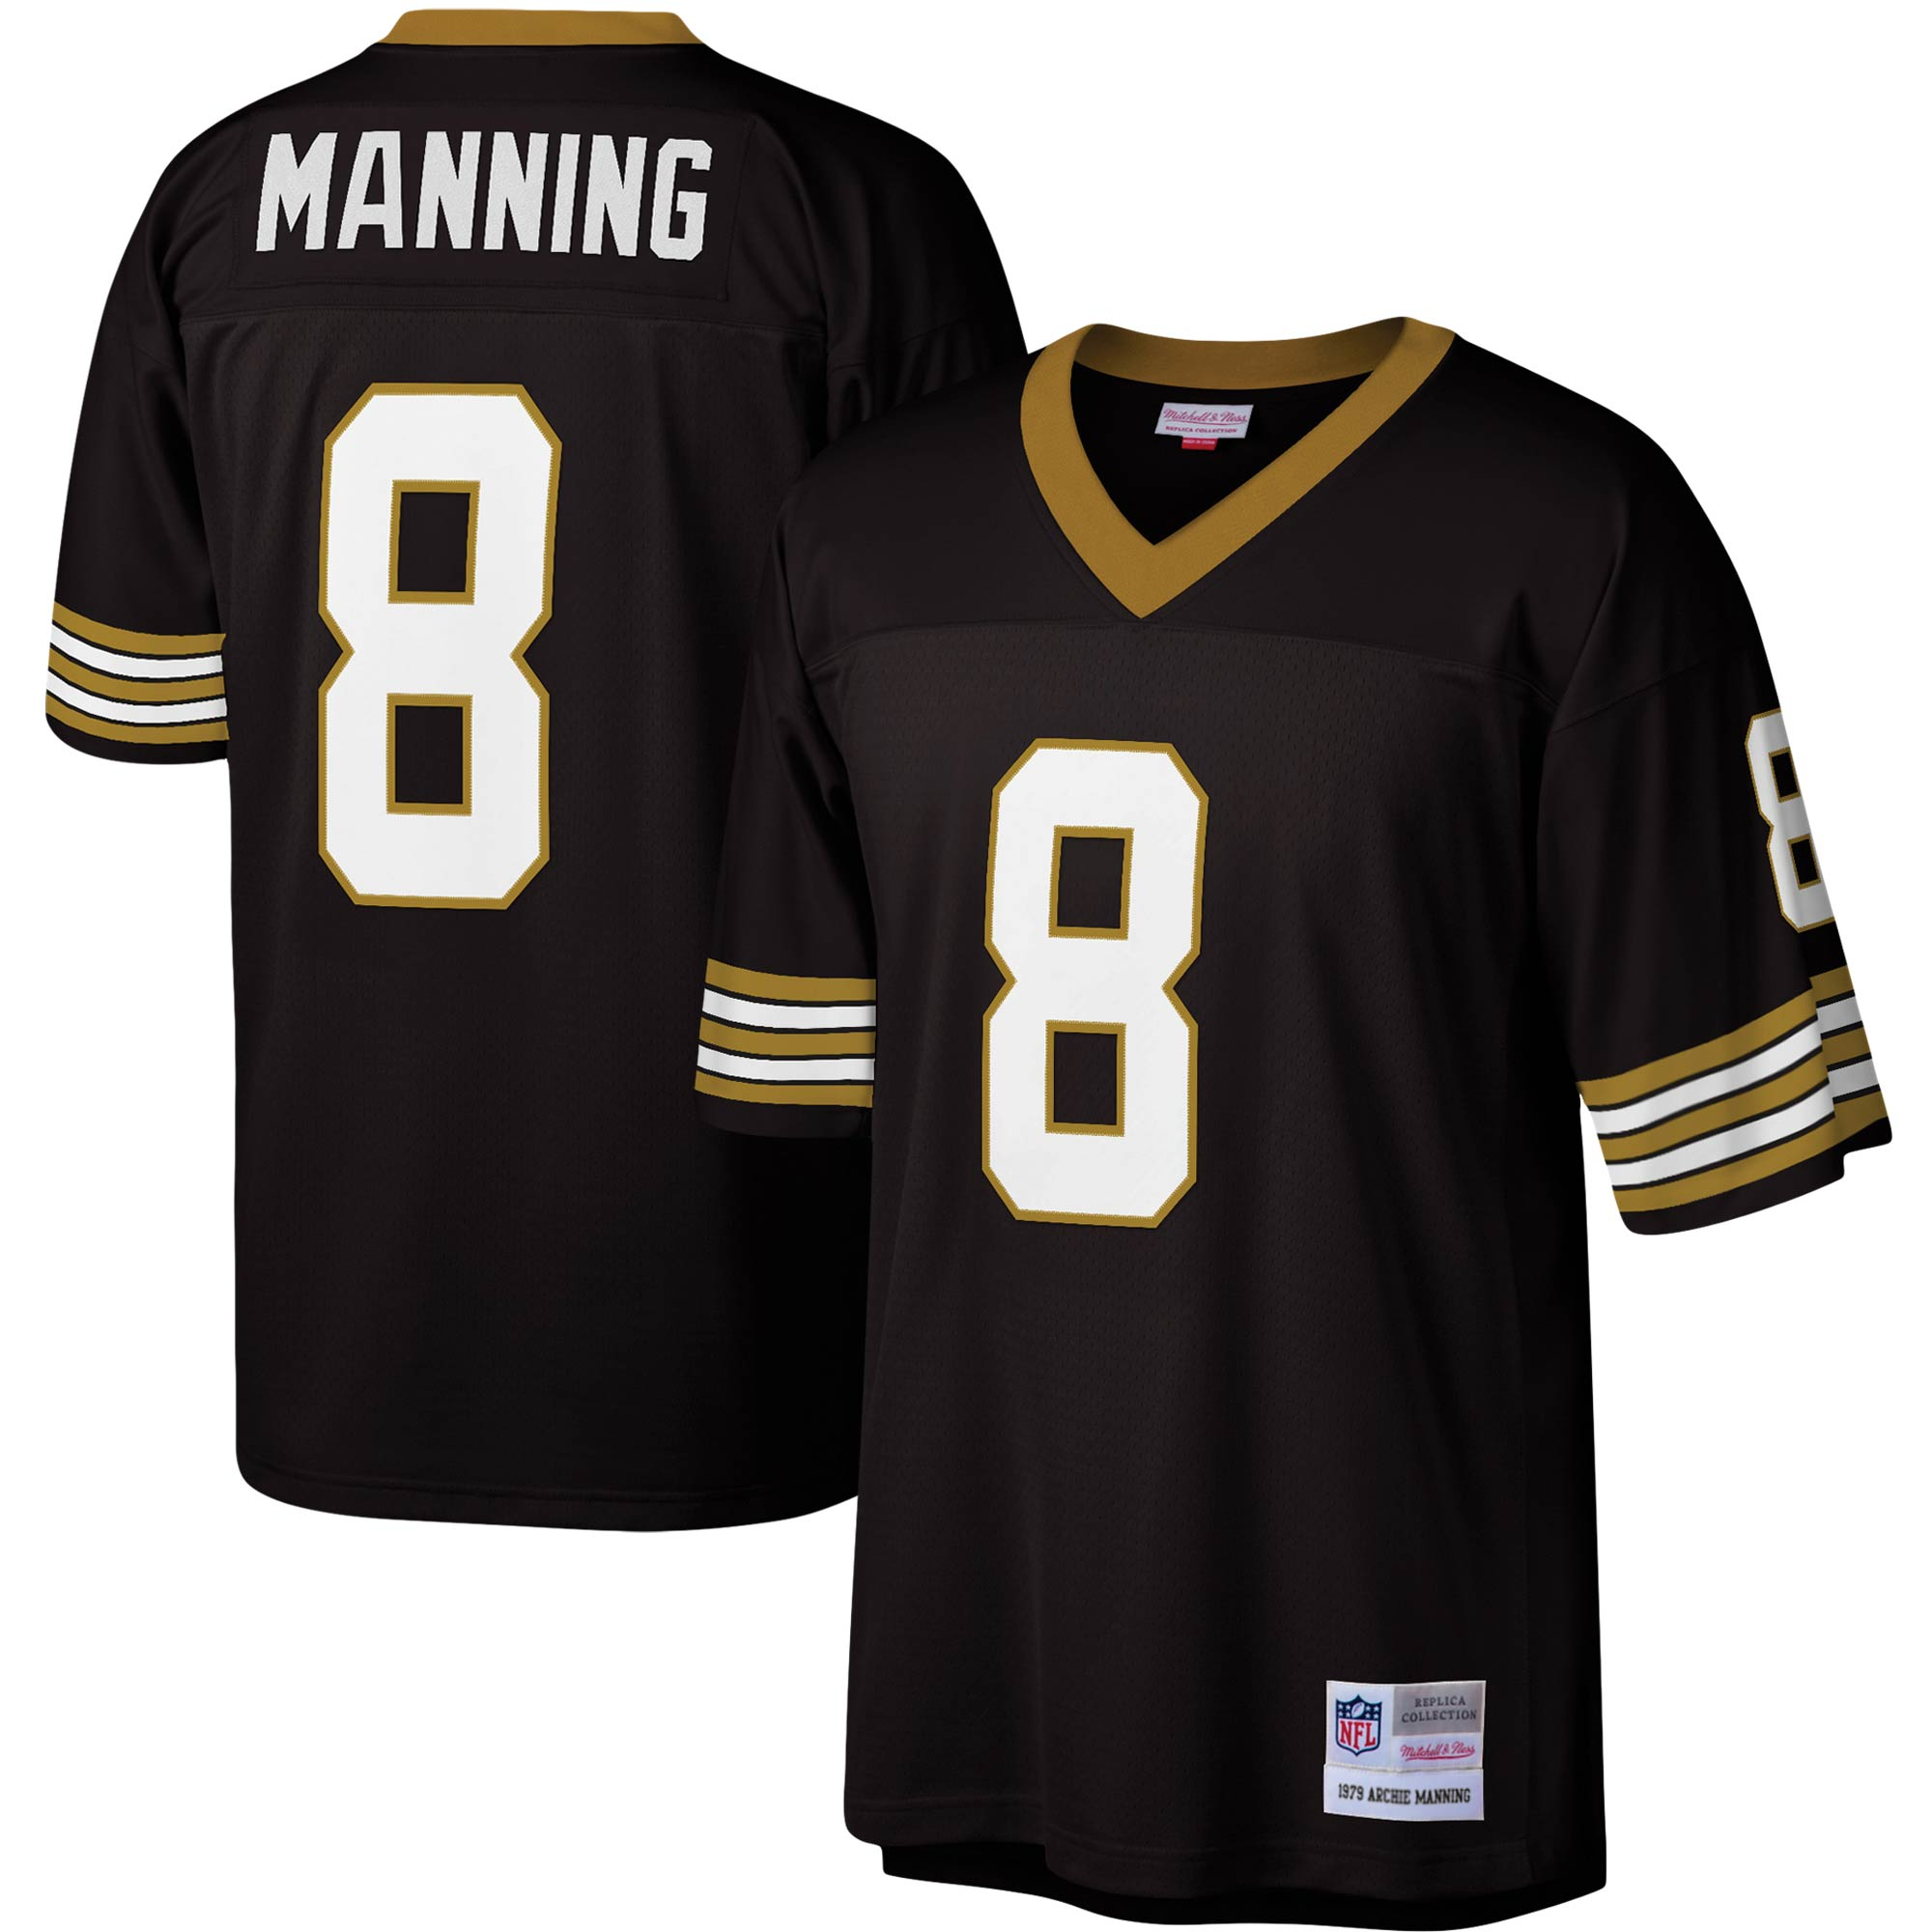 Archie Manning New Orleans Saints Mitchell & Ness Legacy Replica Jersey - Black